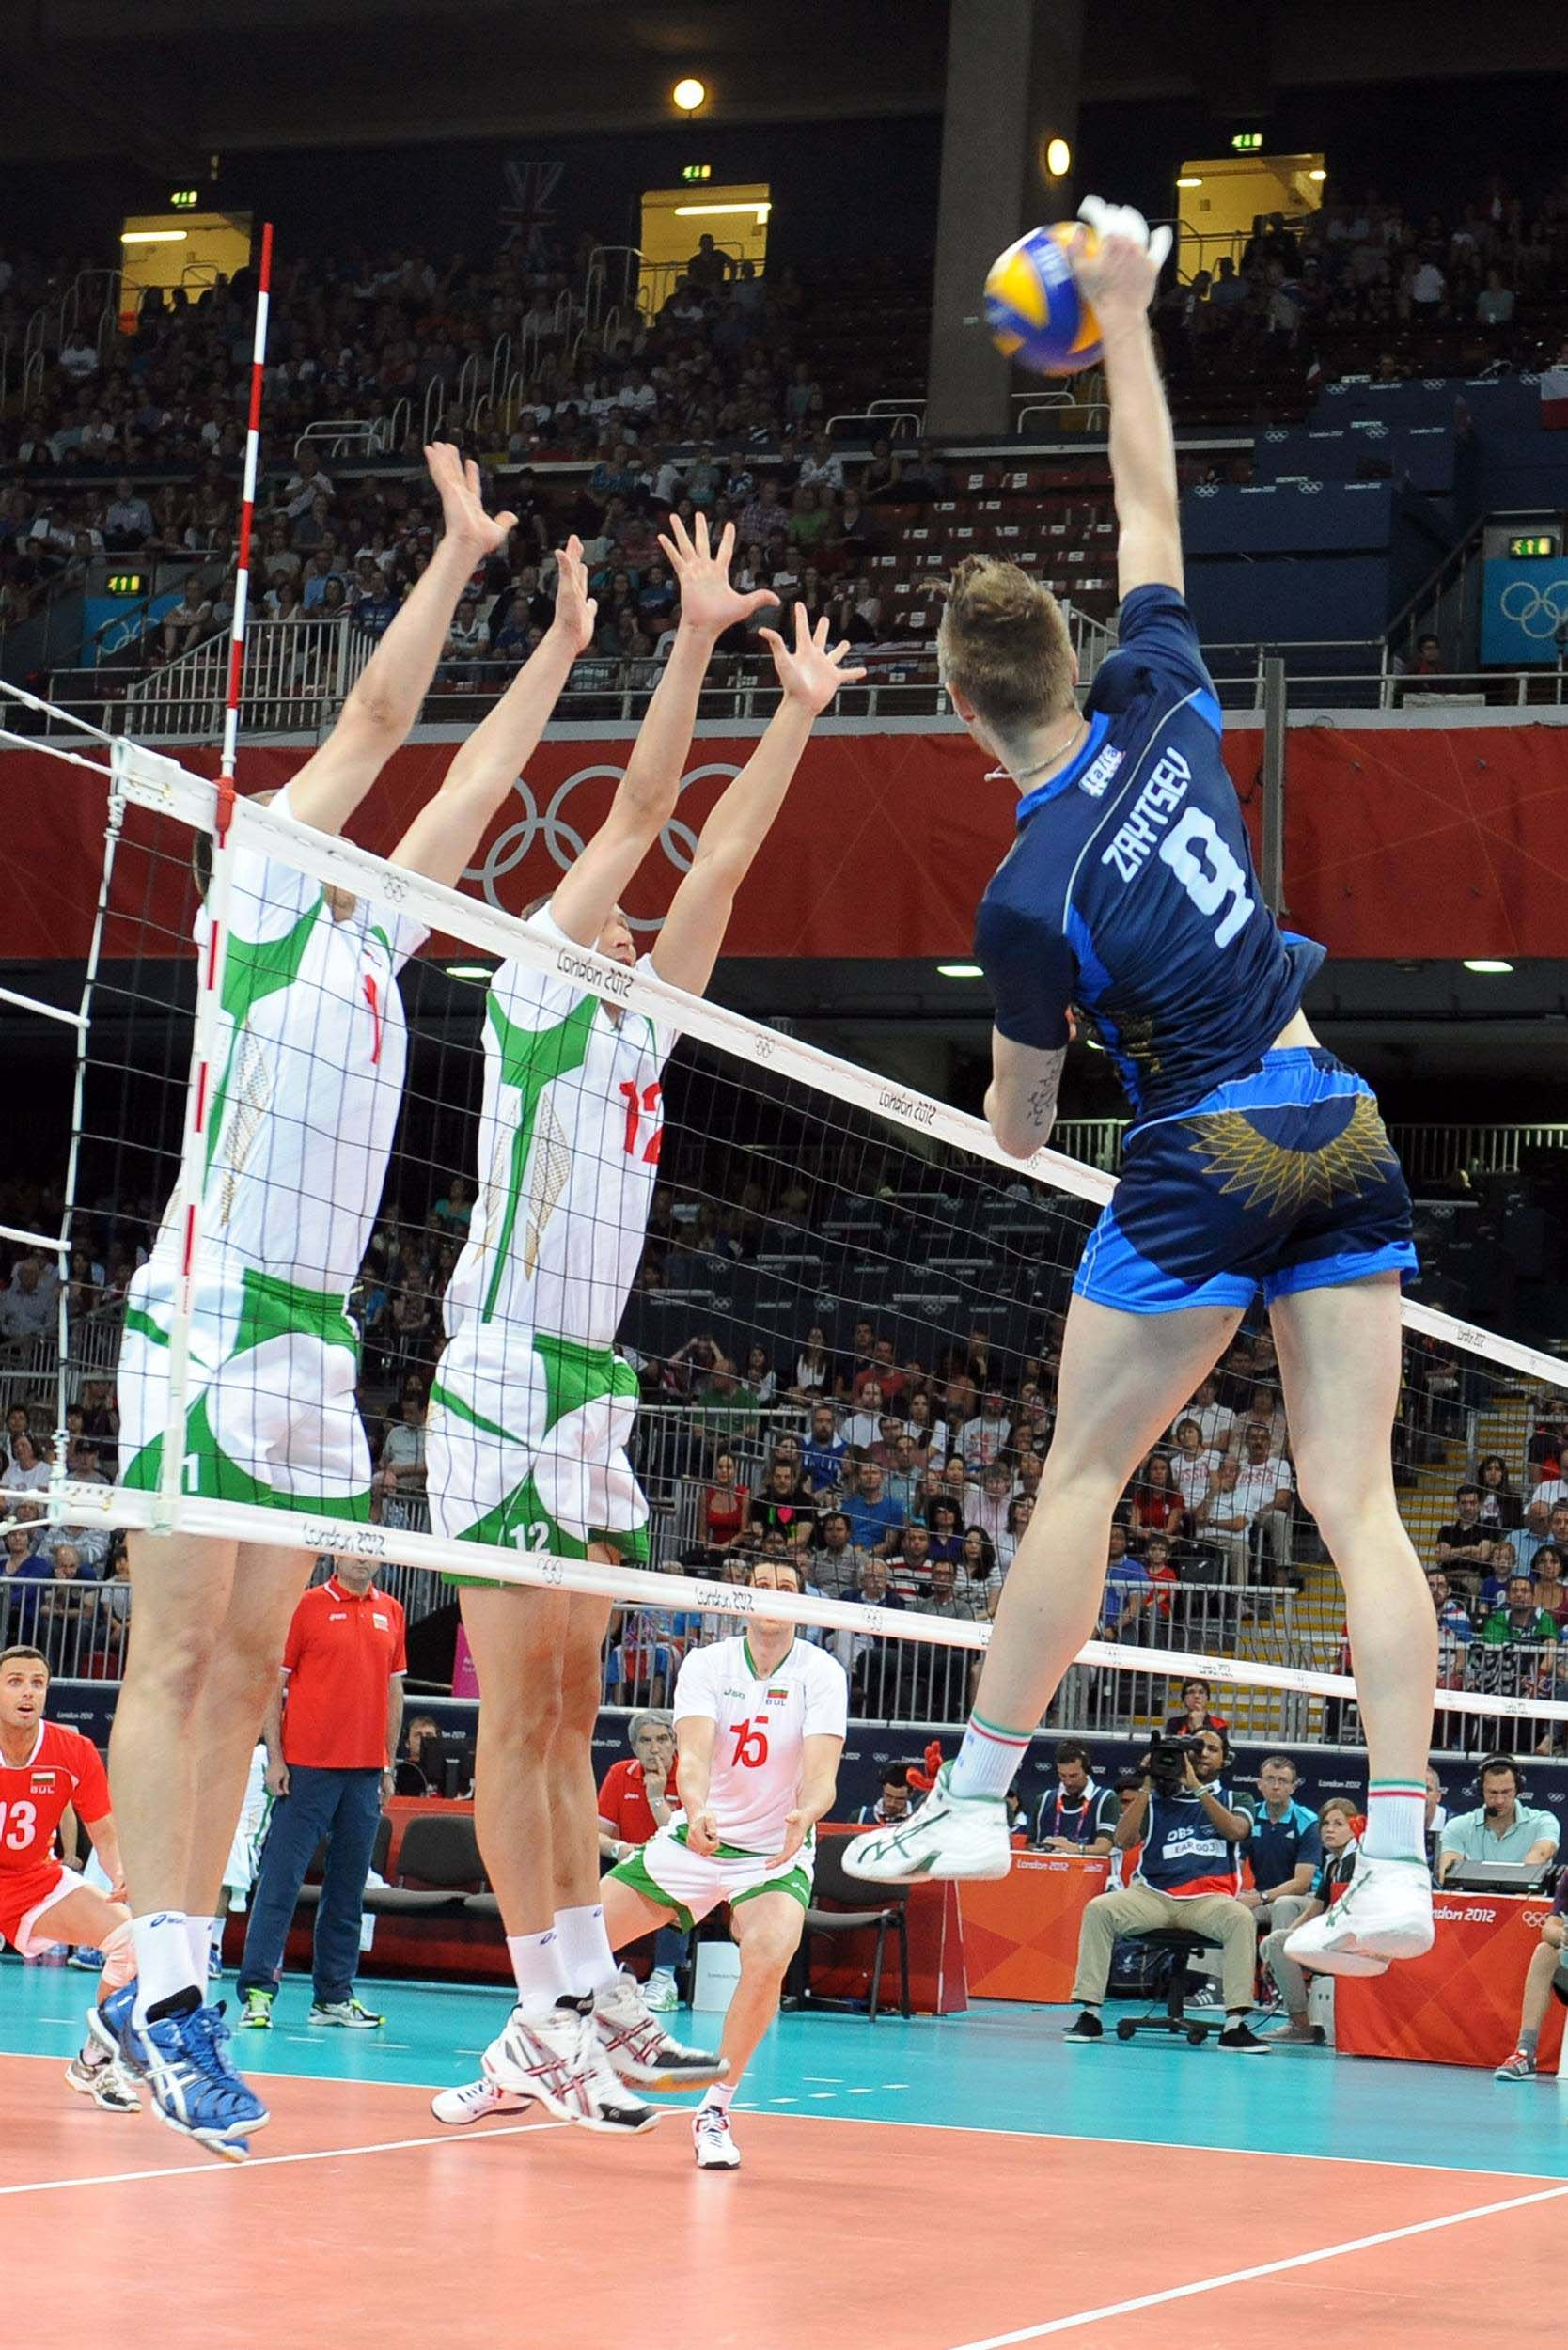 Ivan zaytsev hot italian volleyball player 2 Ivan Zaytsev <3 To Play In Russia